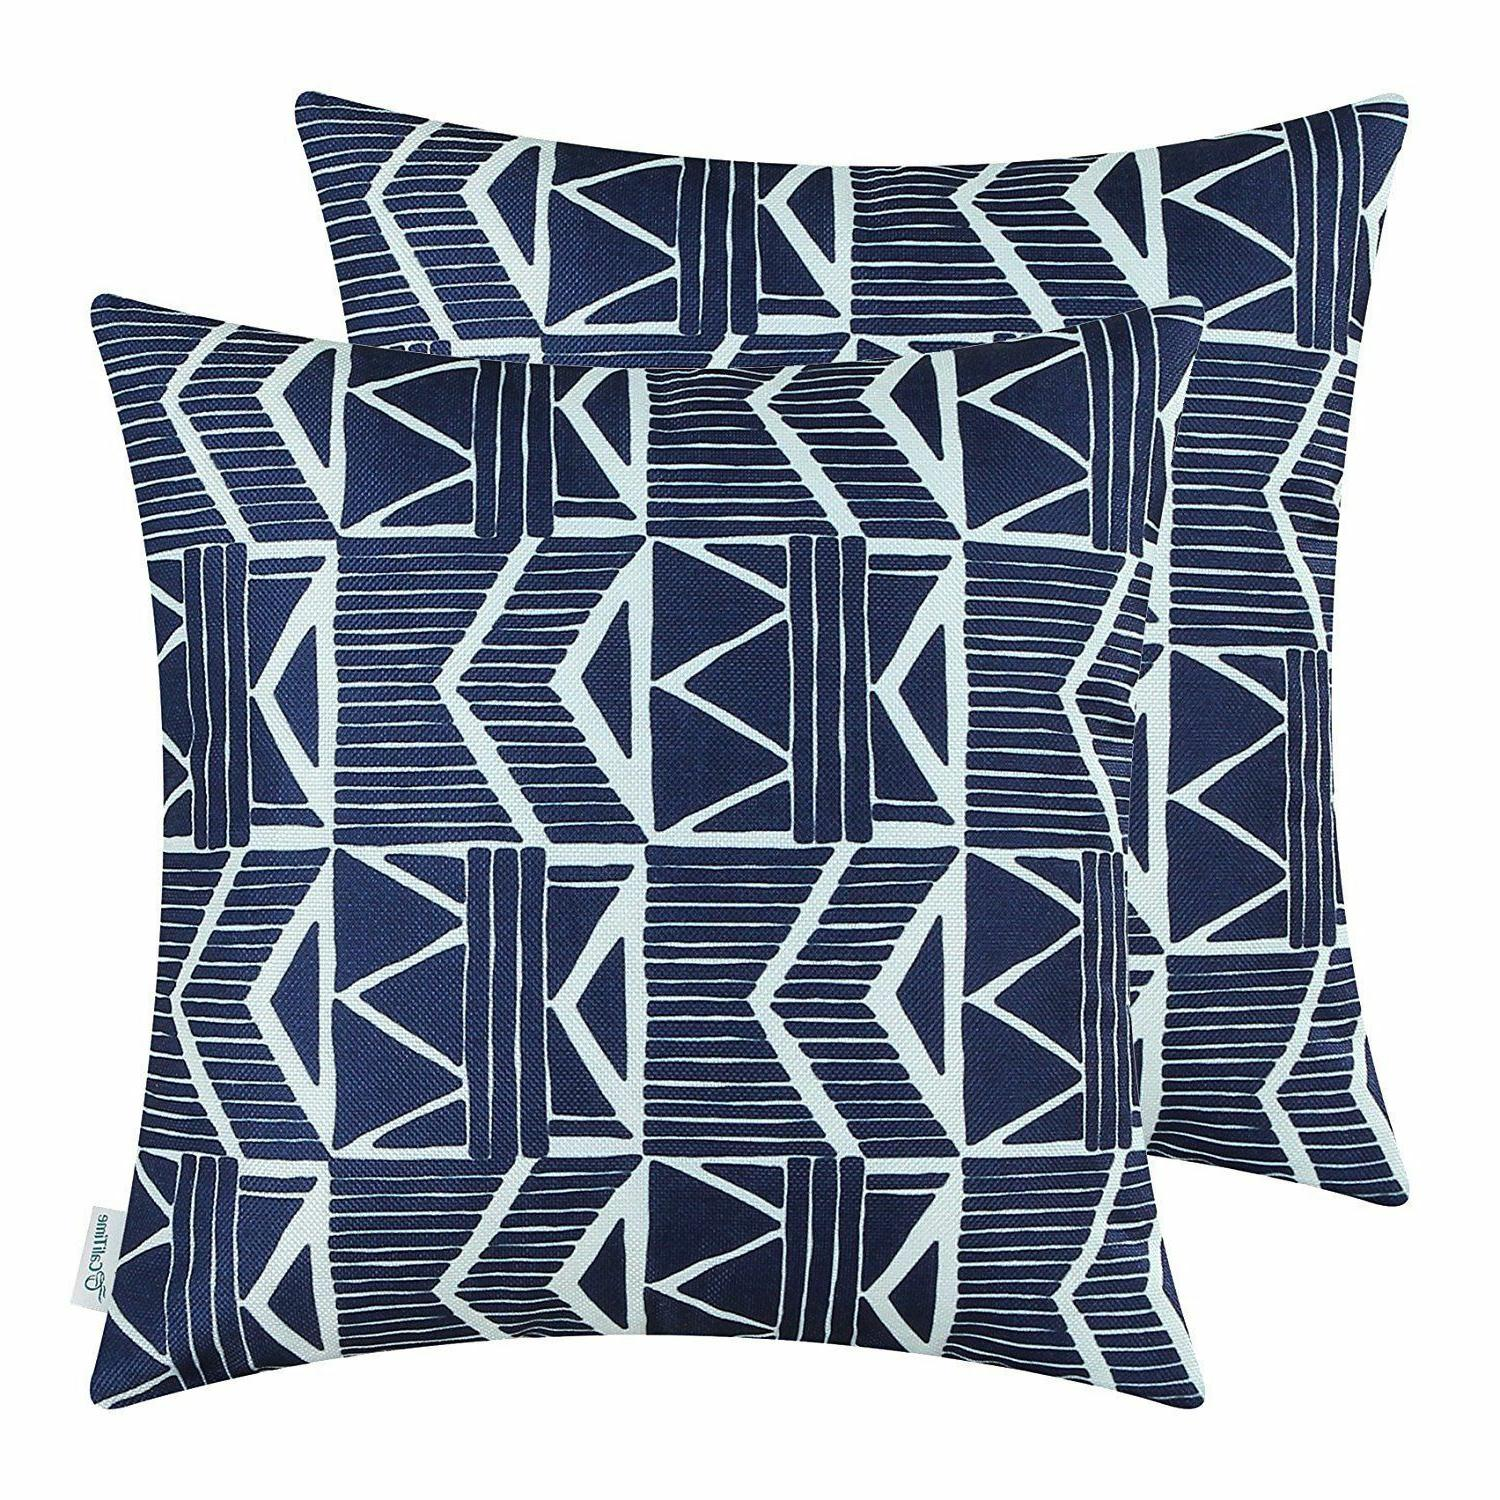 Navy Southwest Modern, CaliTime Throw Pillow Covers 18x18, P